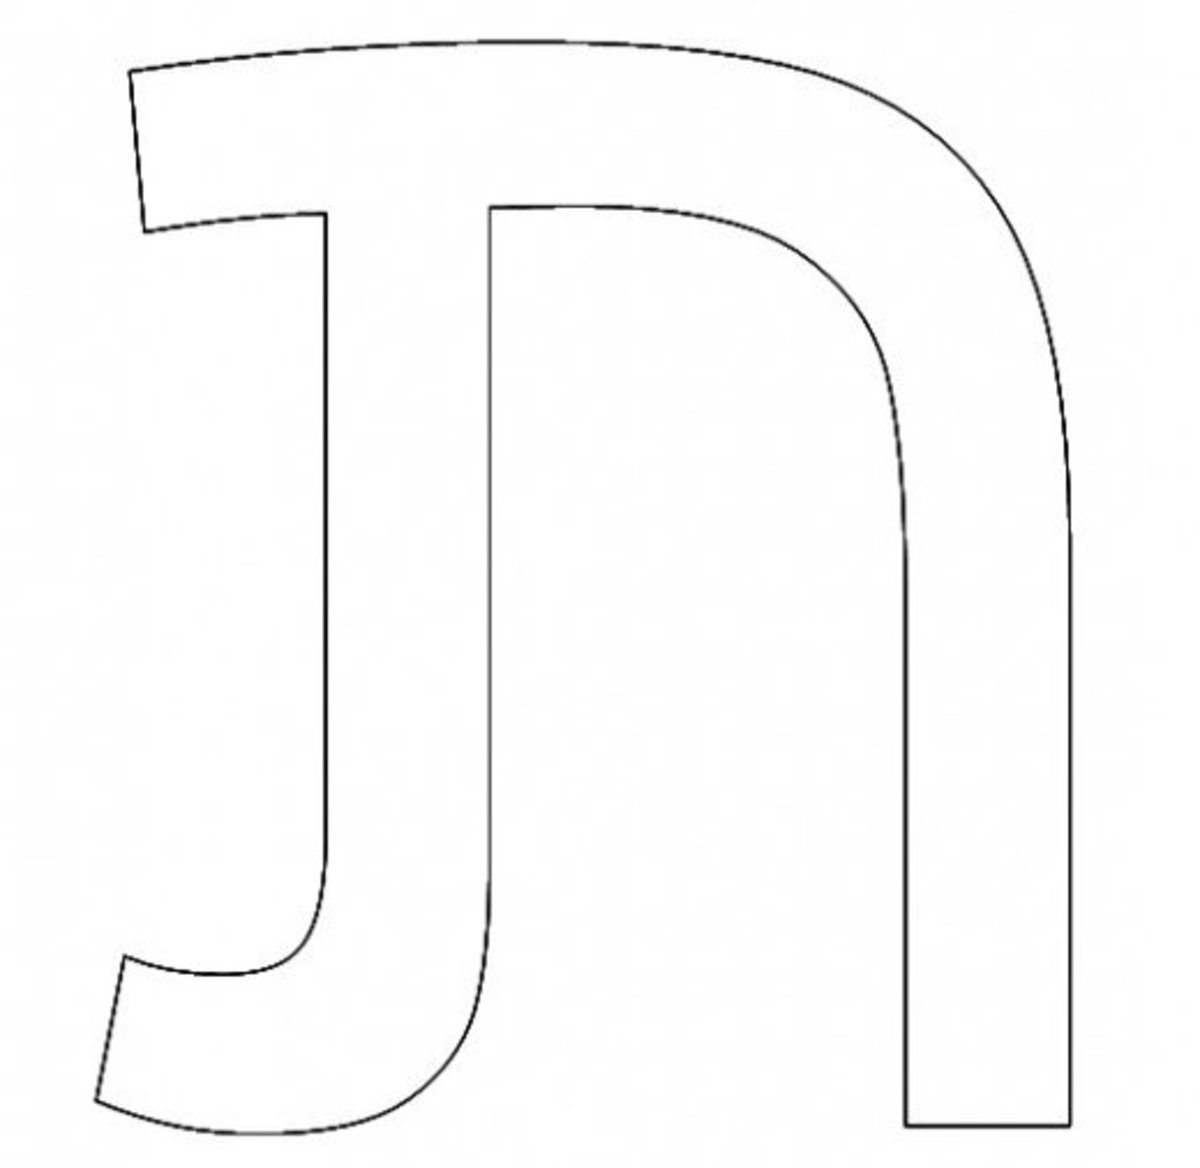 Hebrew Letter Tav Coloring Page - דף צביעה אוֹת תו